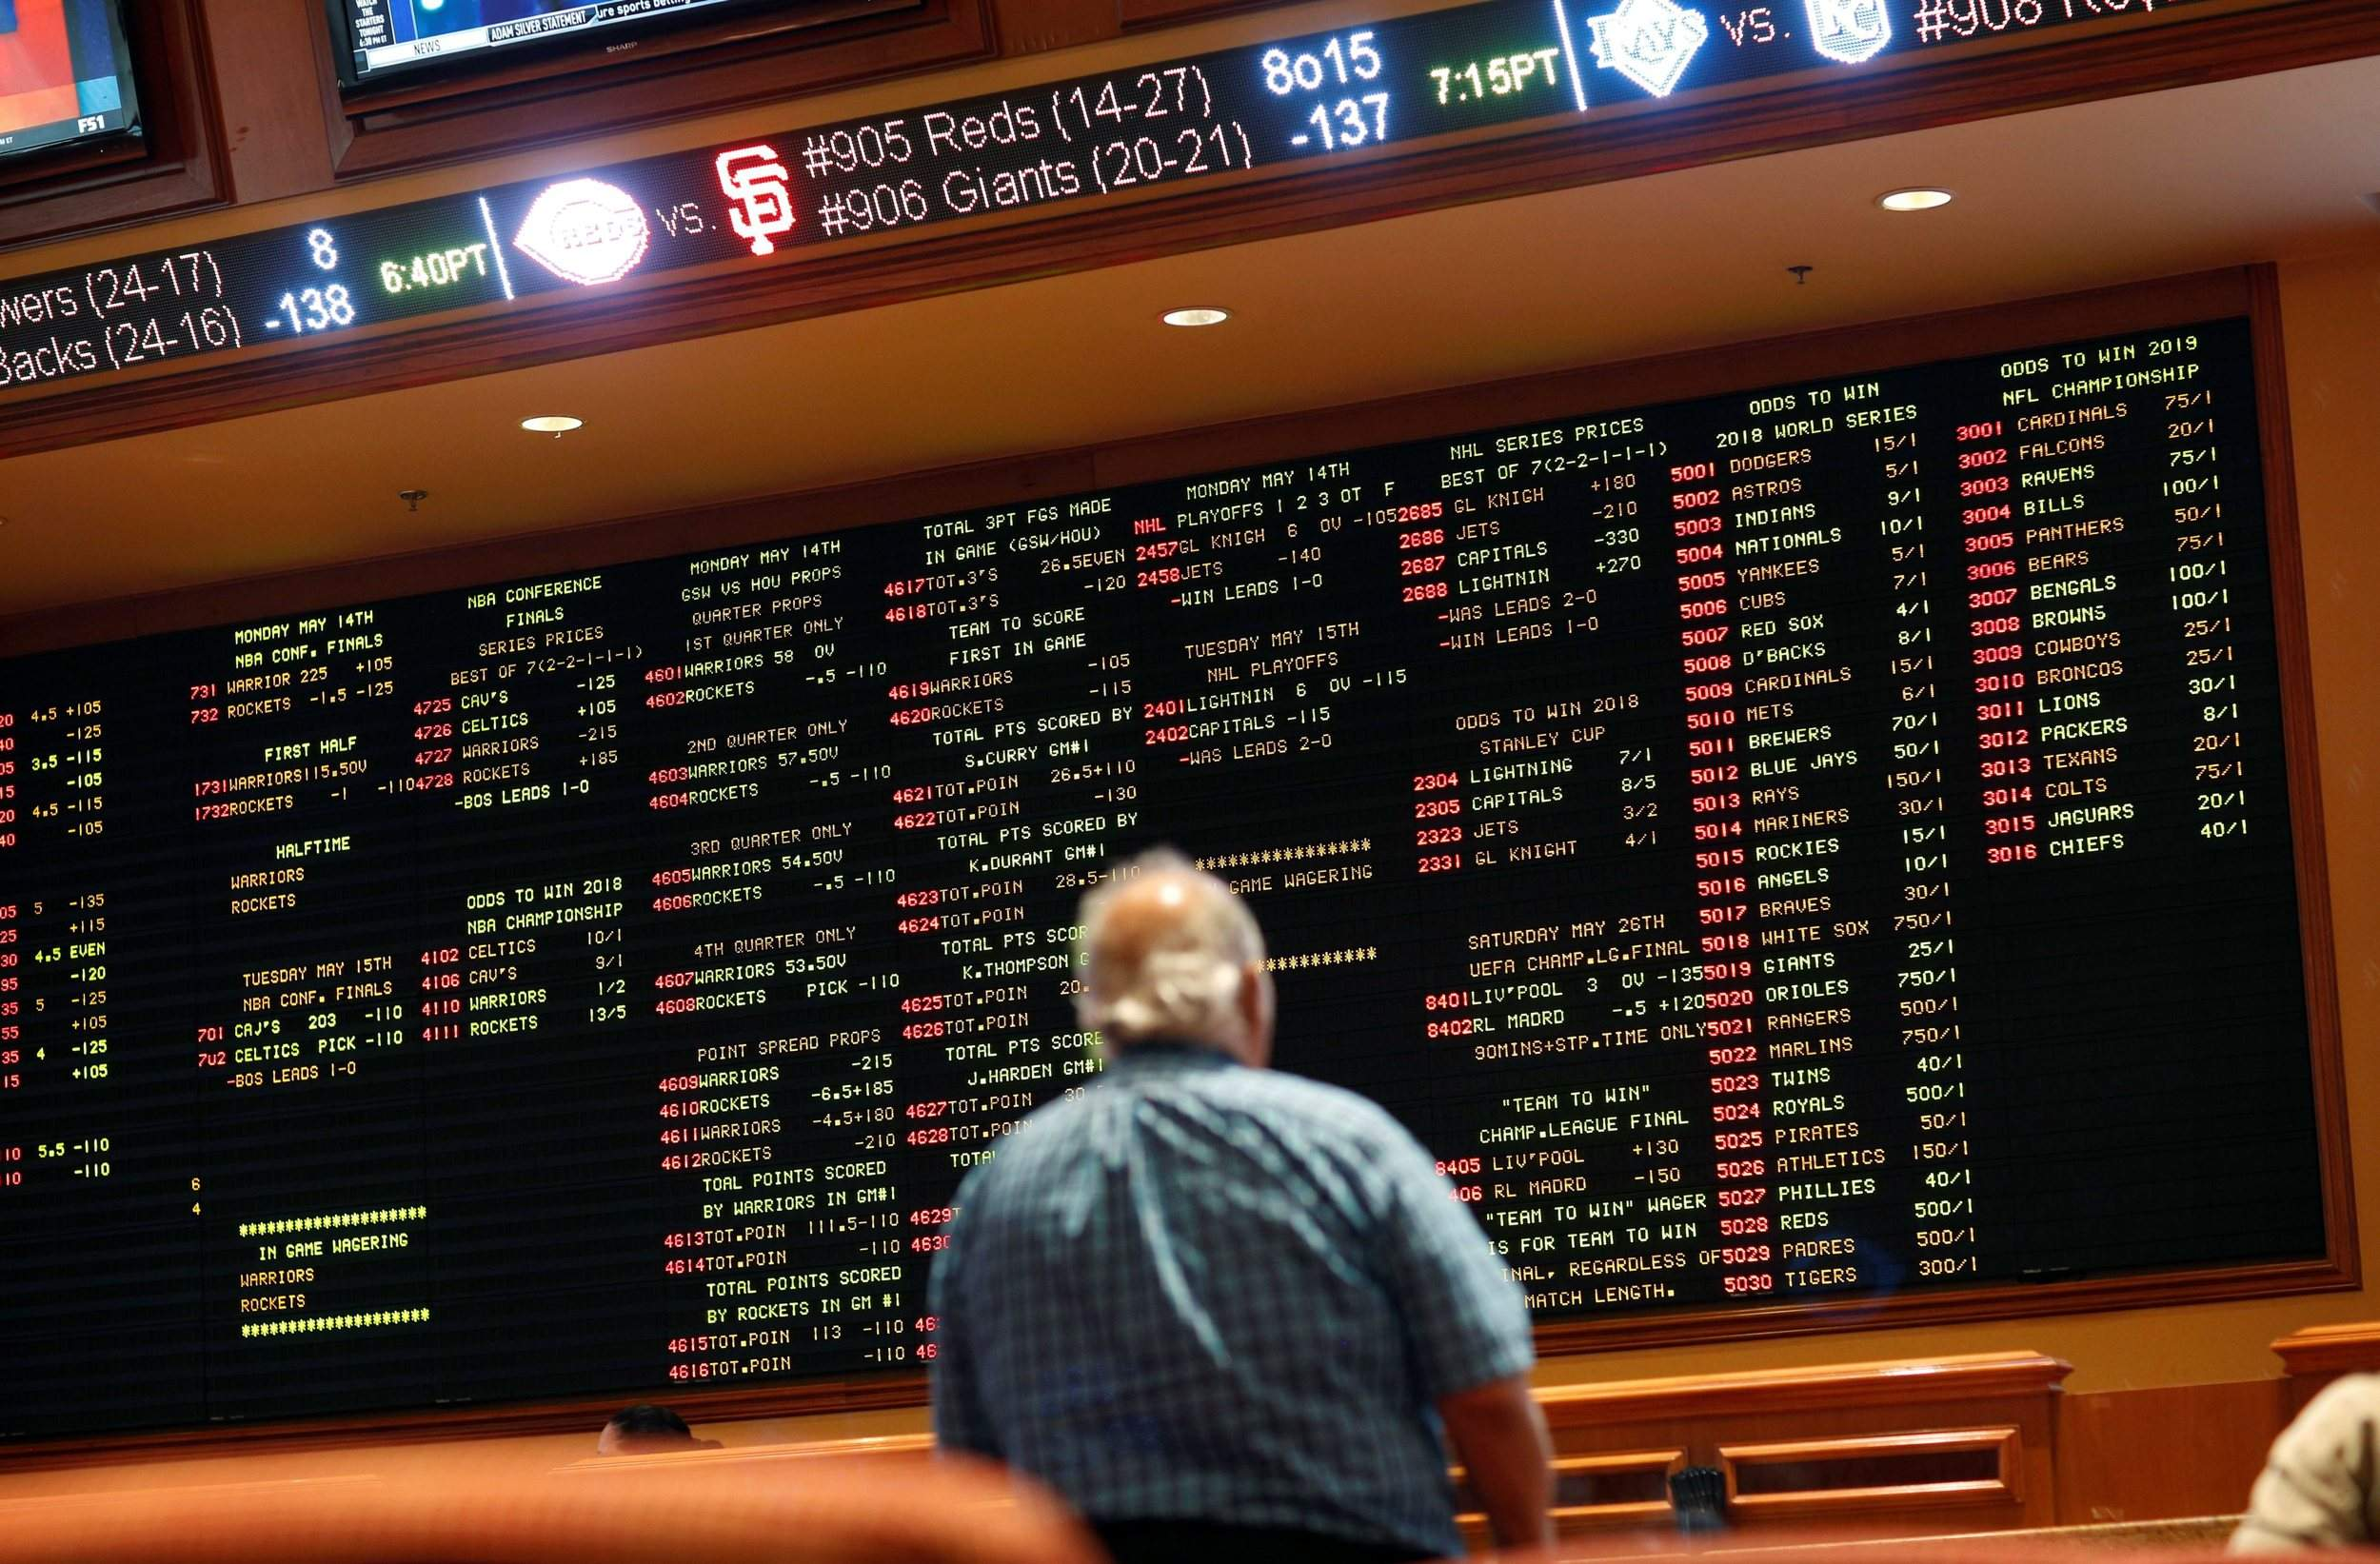 Questions about sports gambling pictures of slot machine cakes